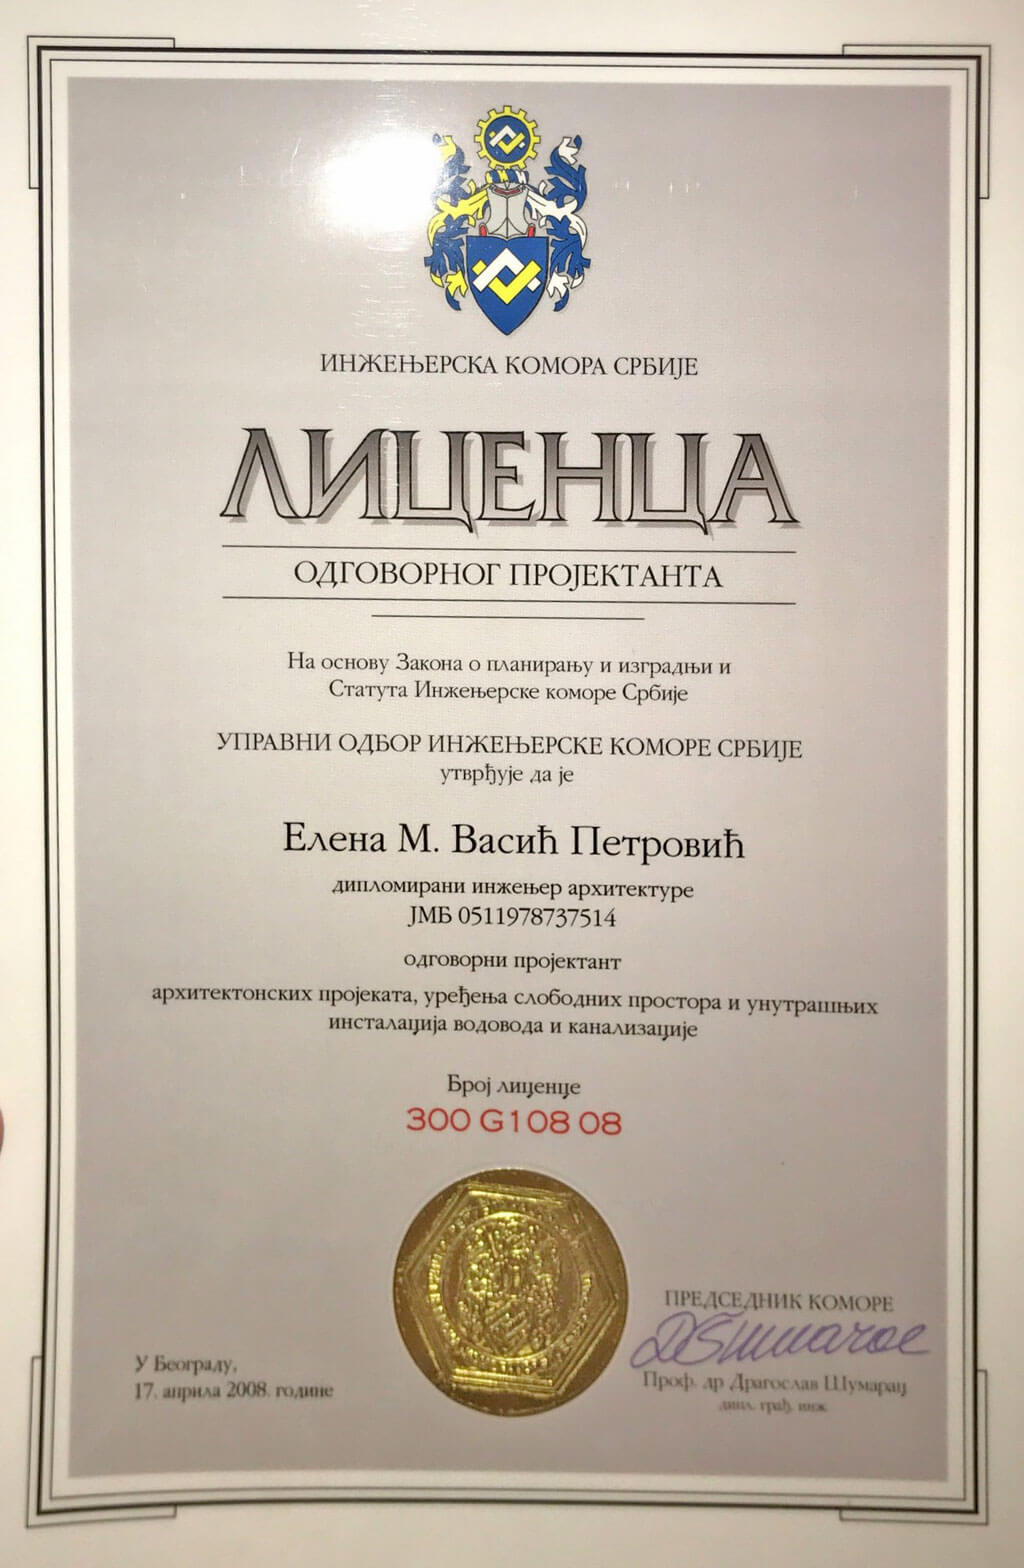 Certificate of the chief designer